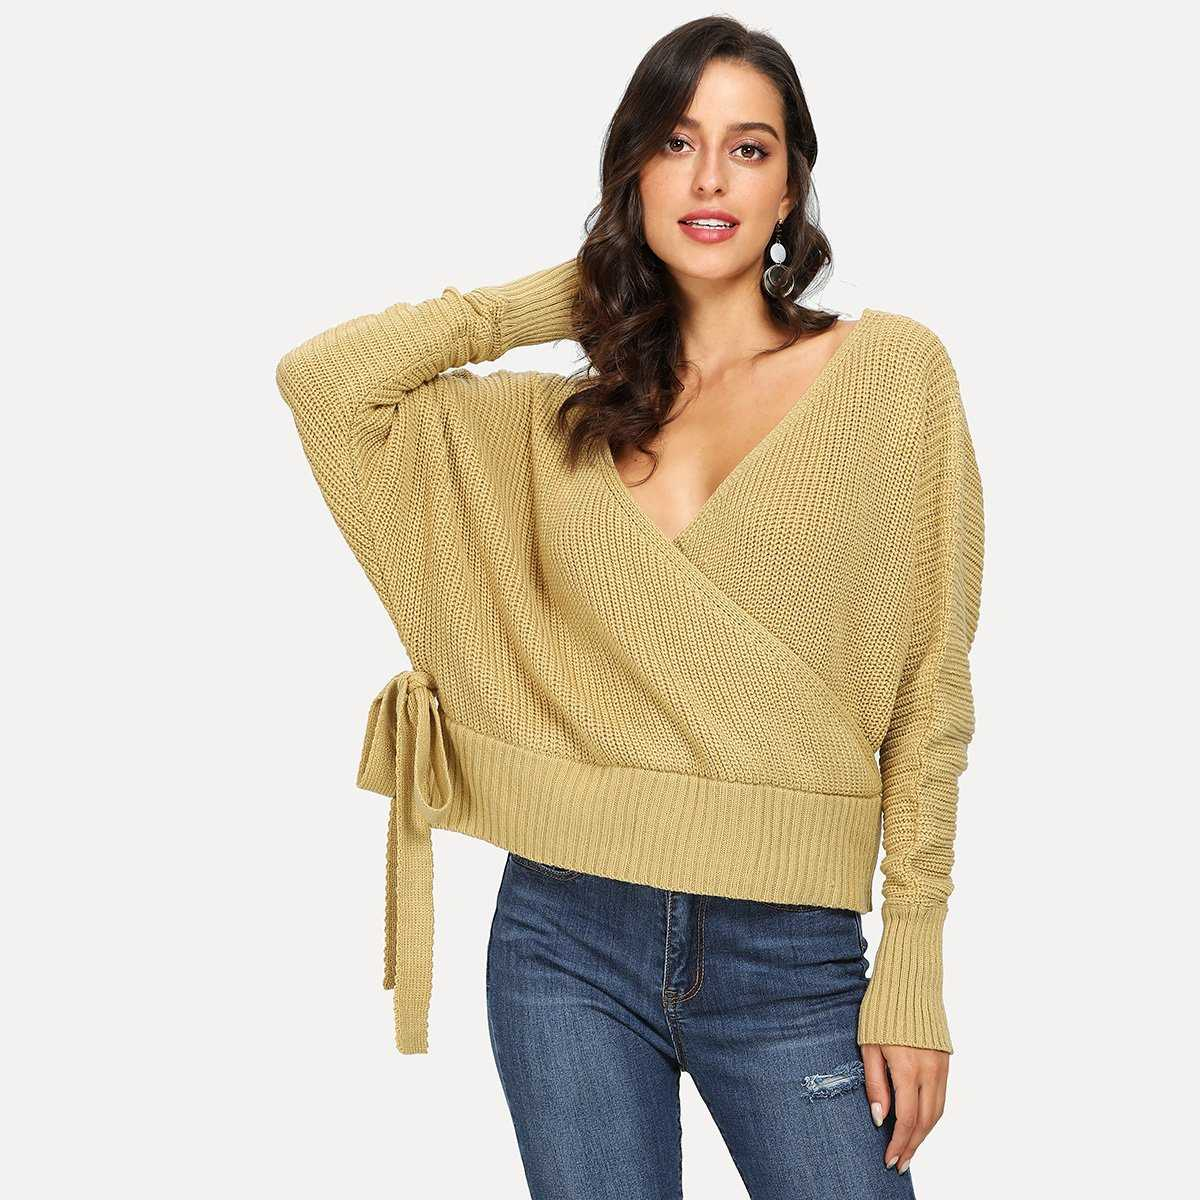 Surplice Neck Knot Side Sweater in Yellow by ROMWE on GOOFASH